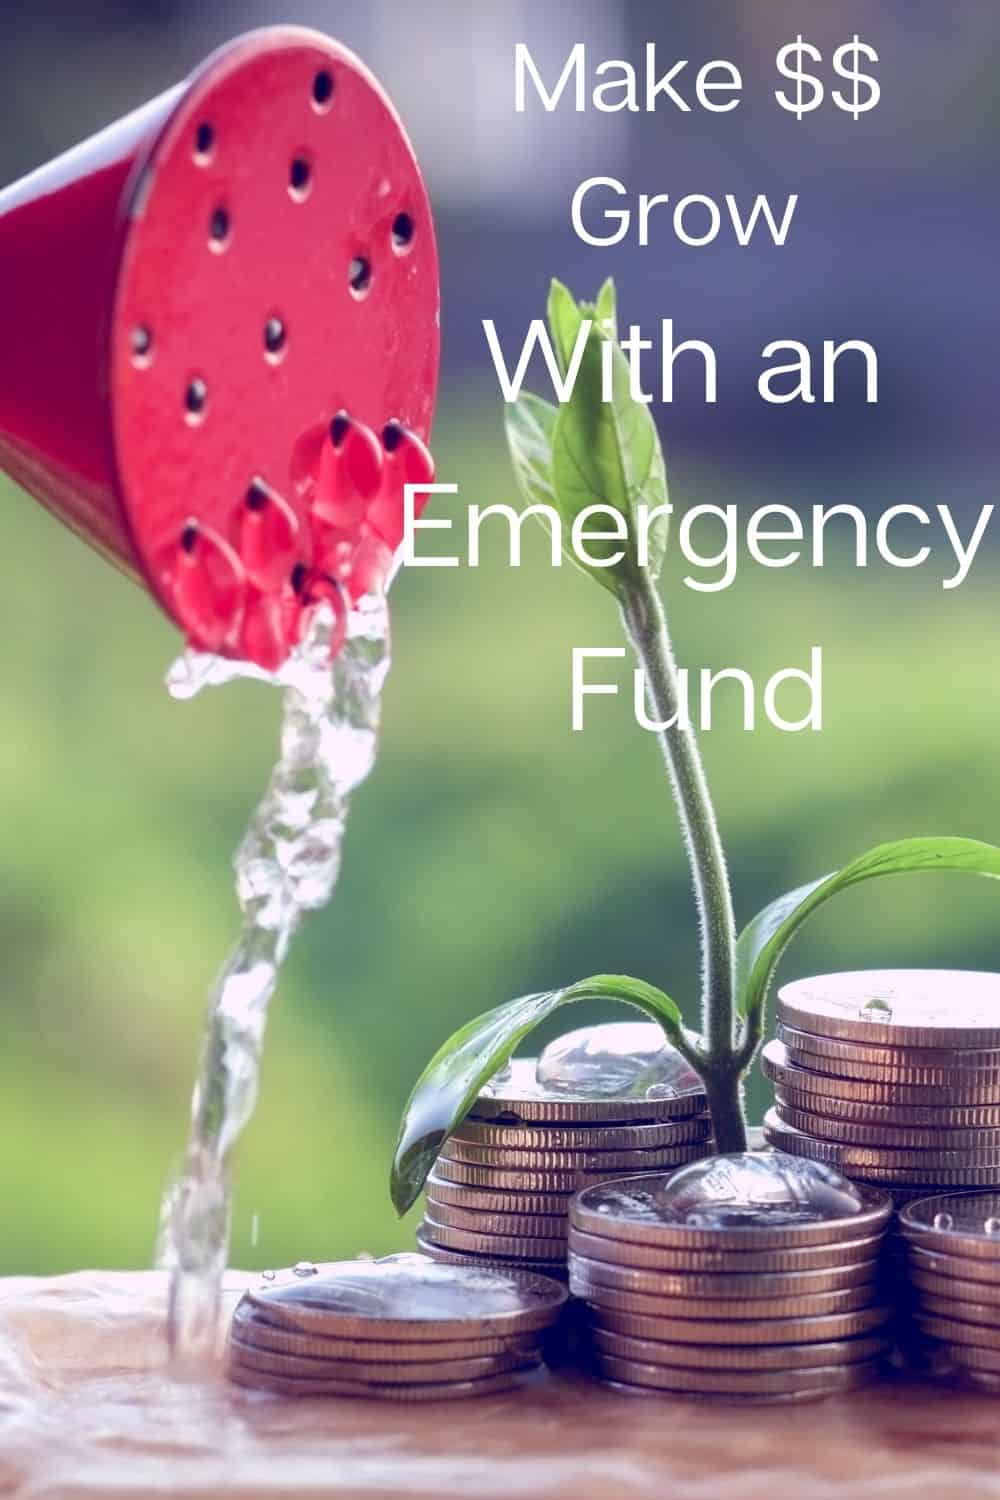 How much cash should you keep in an emergency fund? An emergency fund is a fund of money set aside for unforeseen expenses. The end goal is 3-6 months of income in your emergency fund. #moneywise #emergencyfund #smartmoneytips